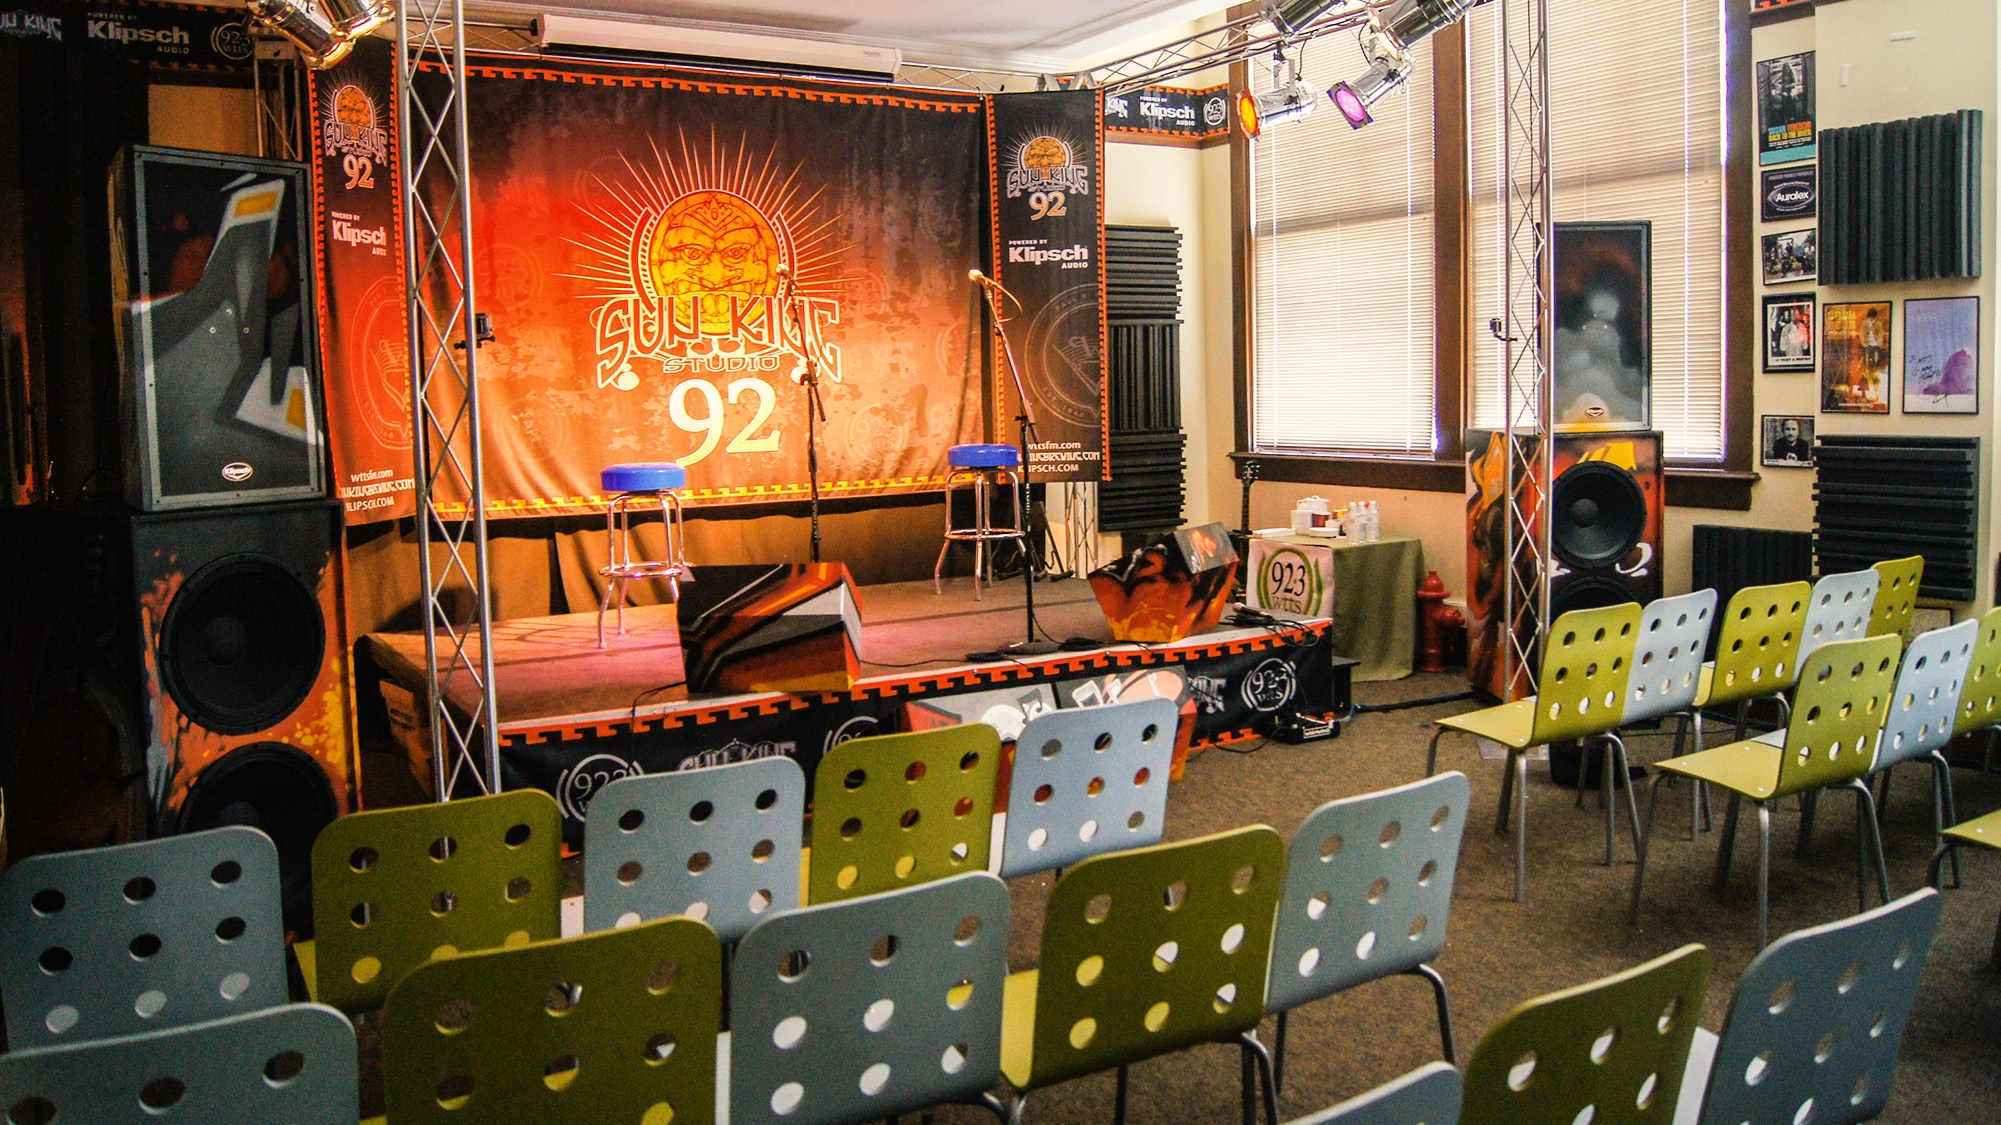 Sun King Studio 92 Powered by Klipsch Audio